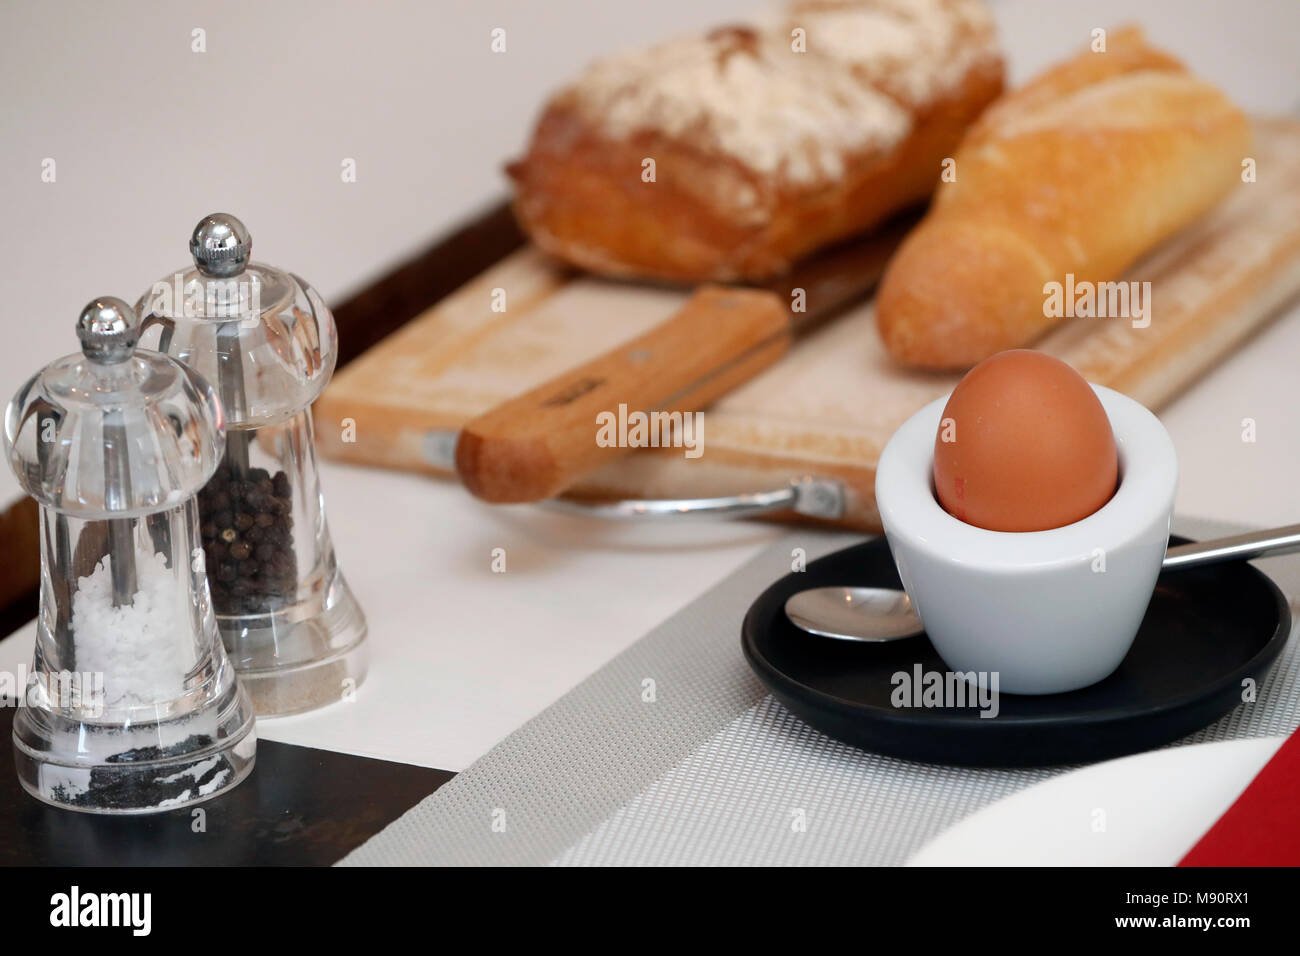 Breakfast on a table at a hotel. Egg and bred. - Stock Image